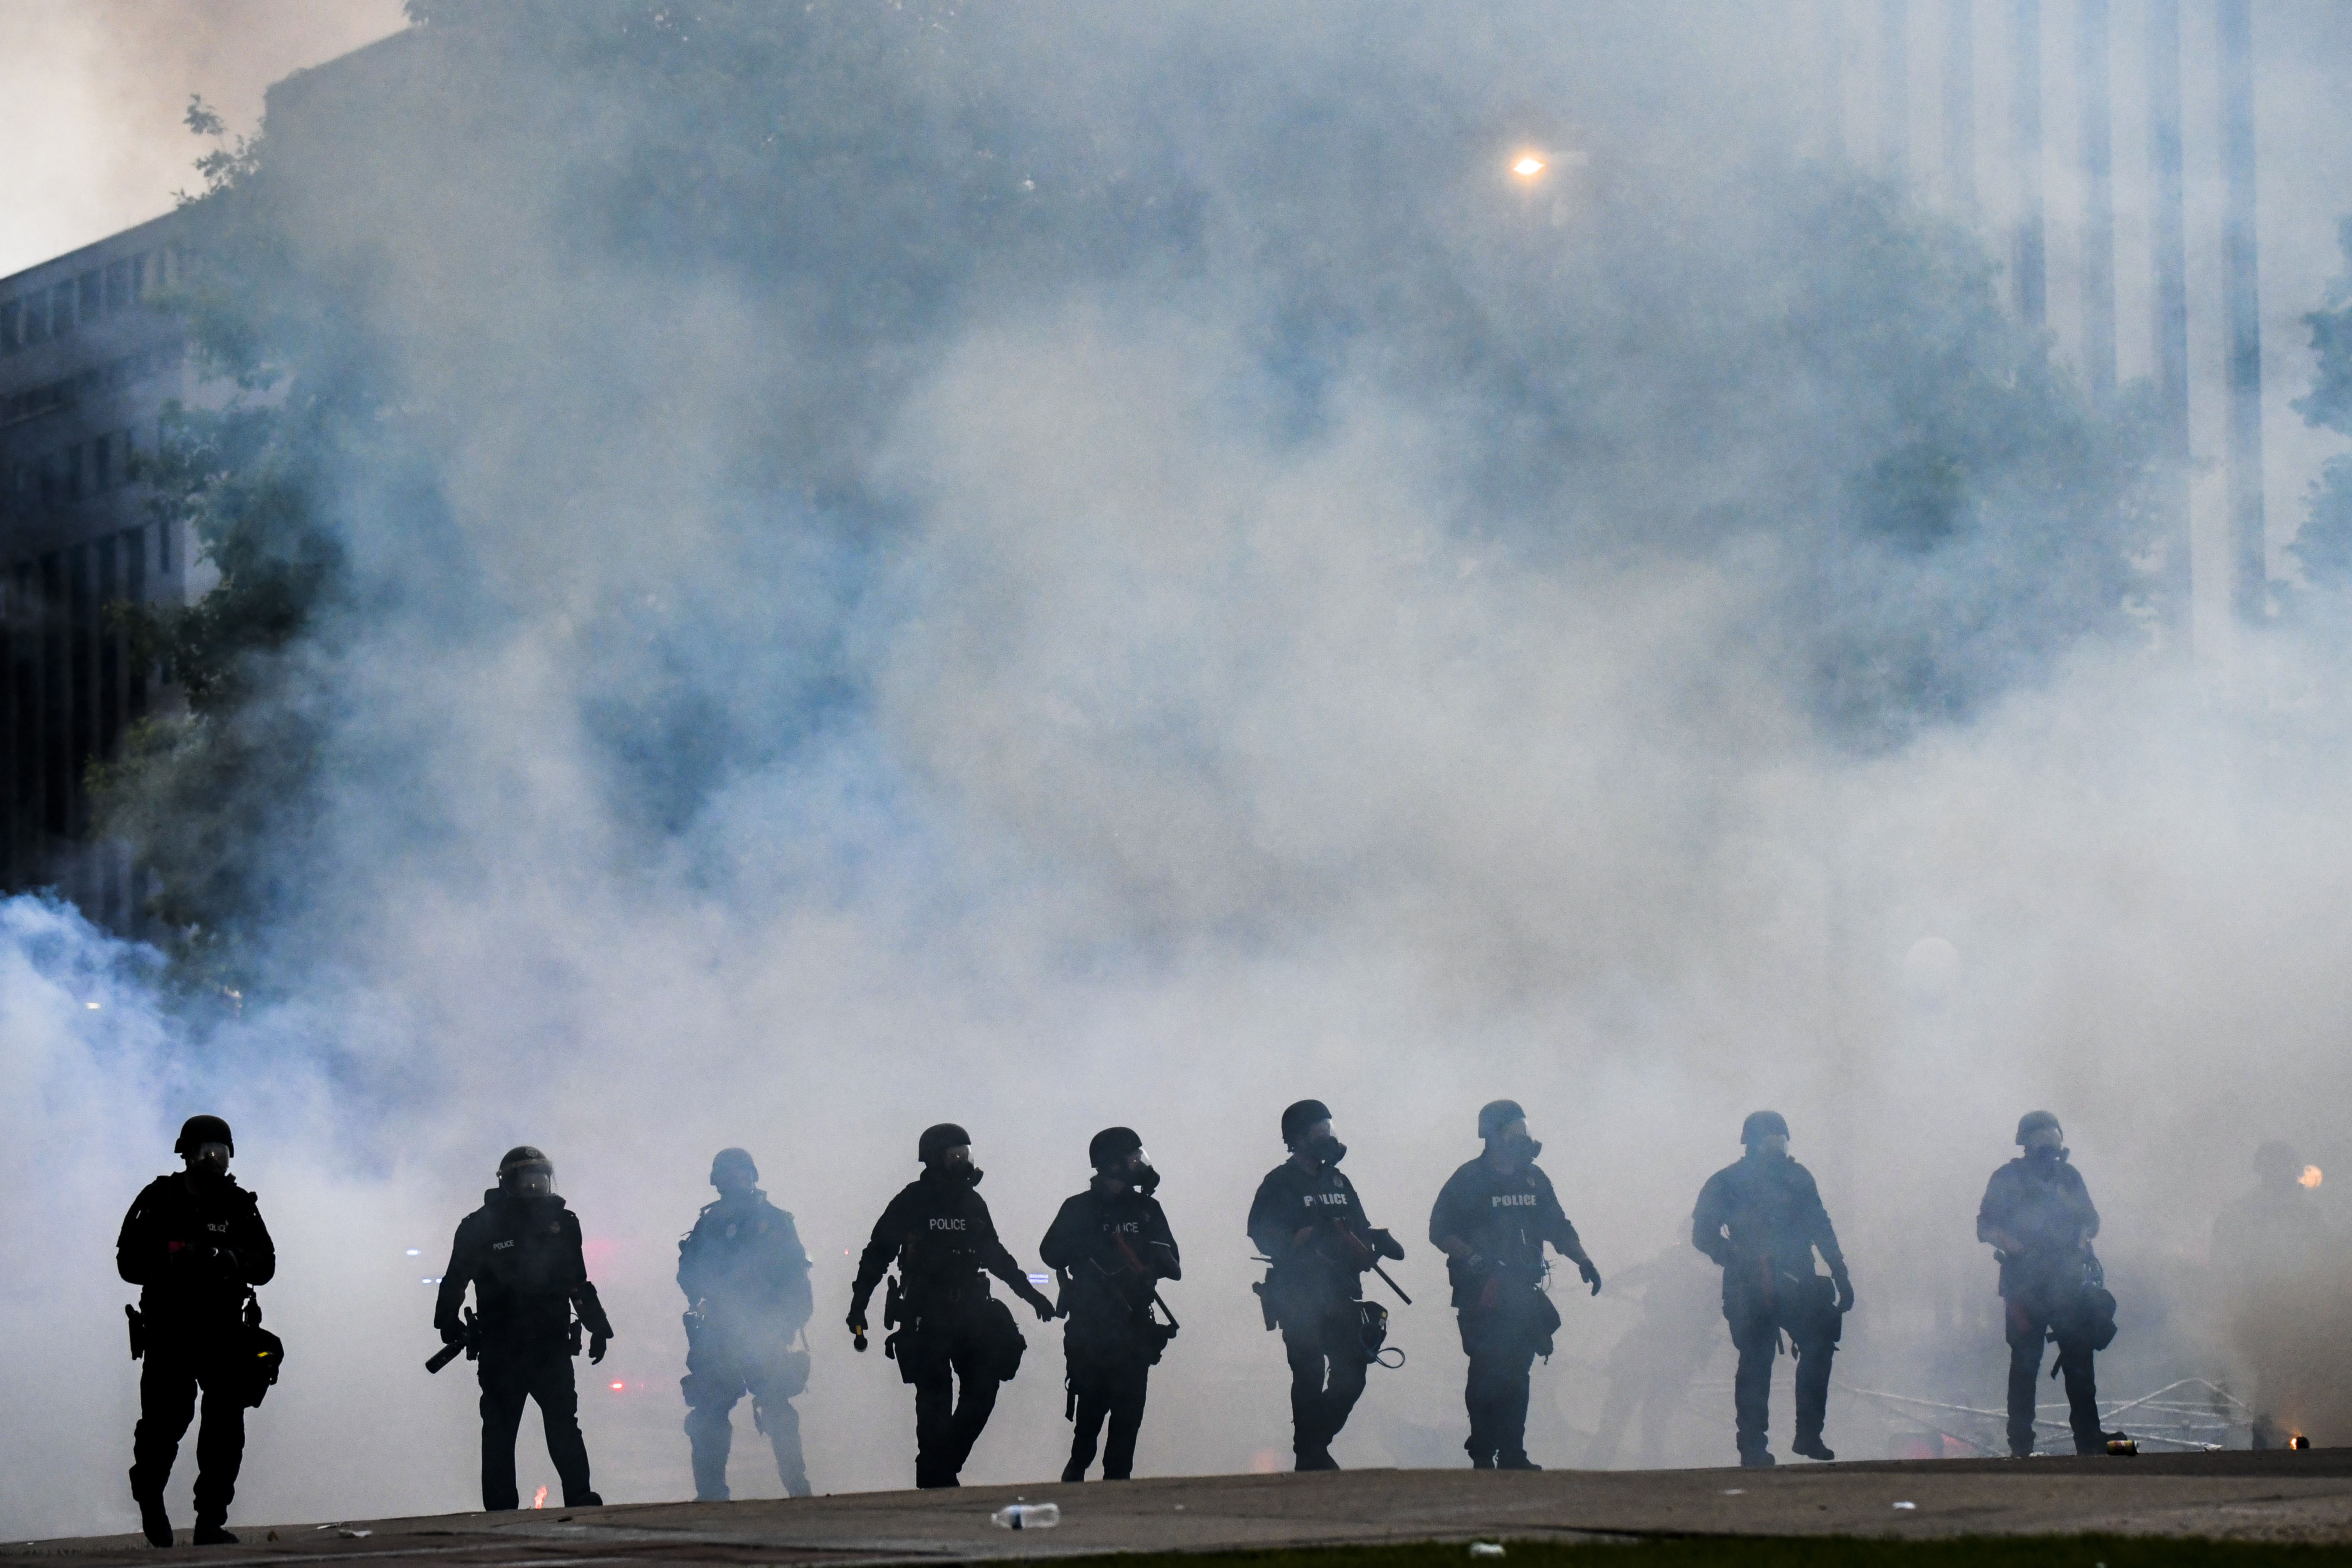 Police officers walk through a cloud of tear gas as they try to disperse protesters in front of the Colorado Capitol  in Denver on May 30.